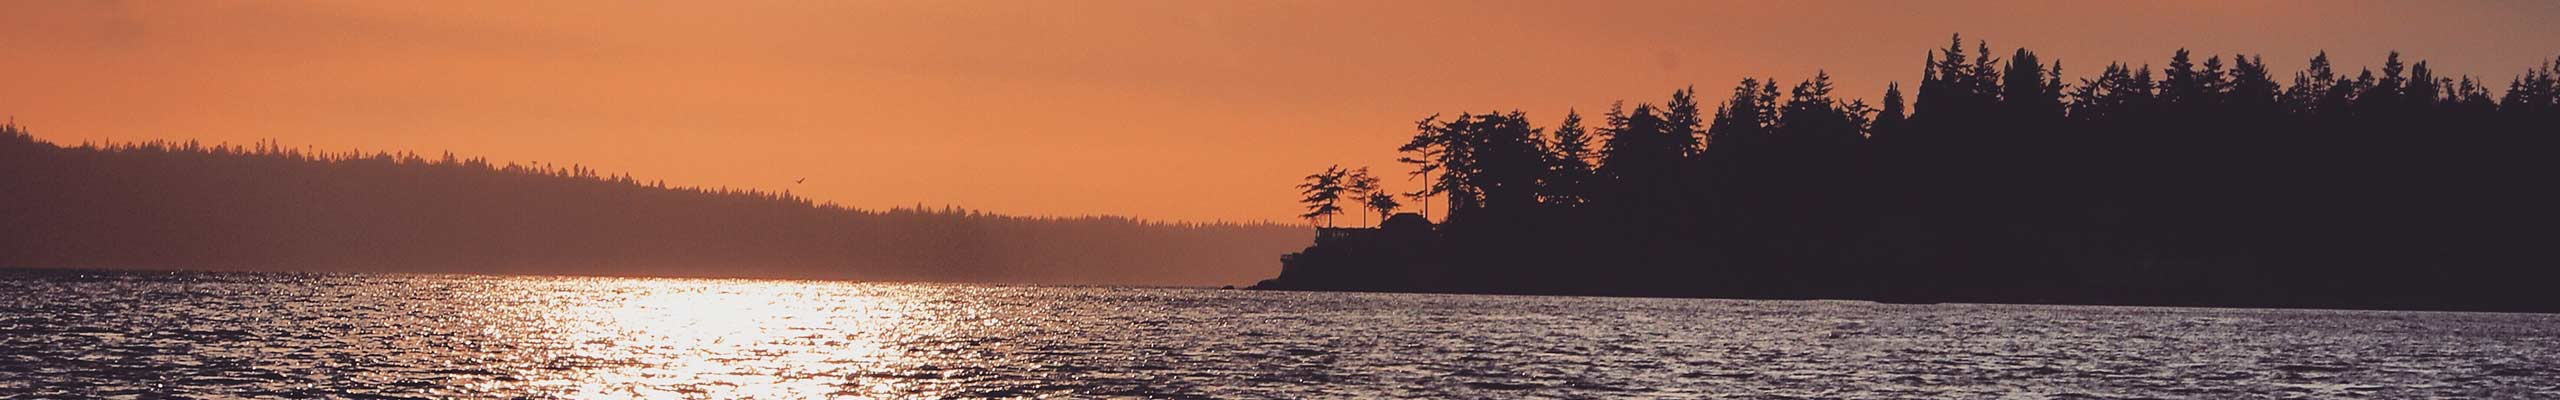 Tulalip Tribes Visitors header image